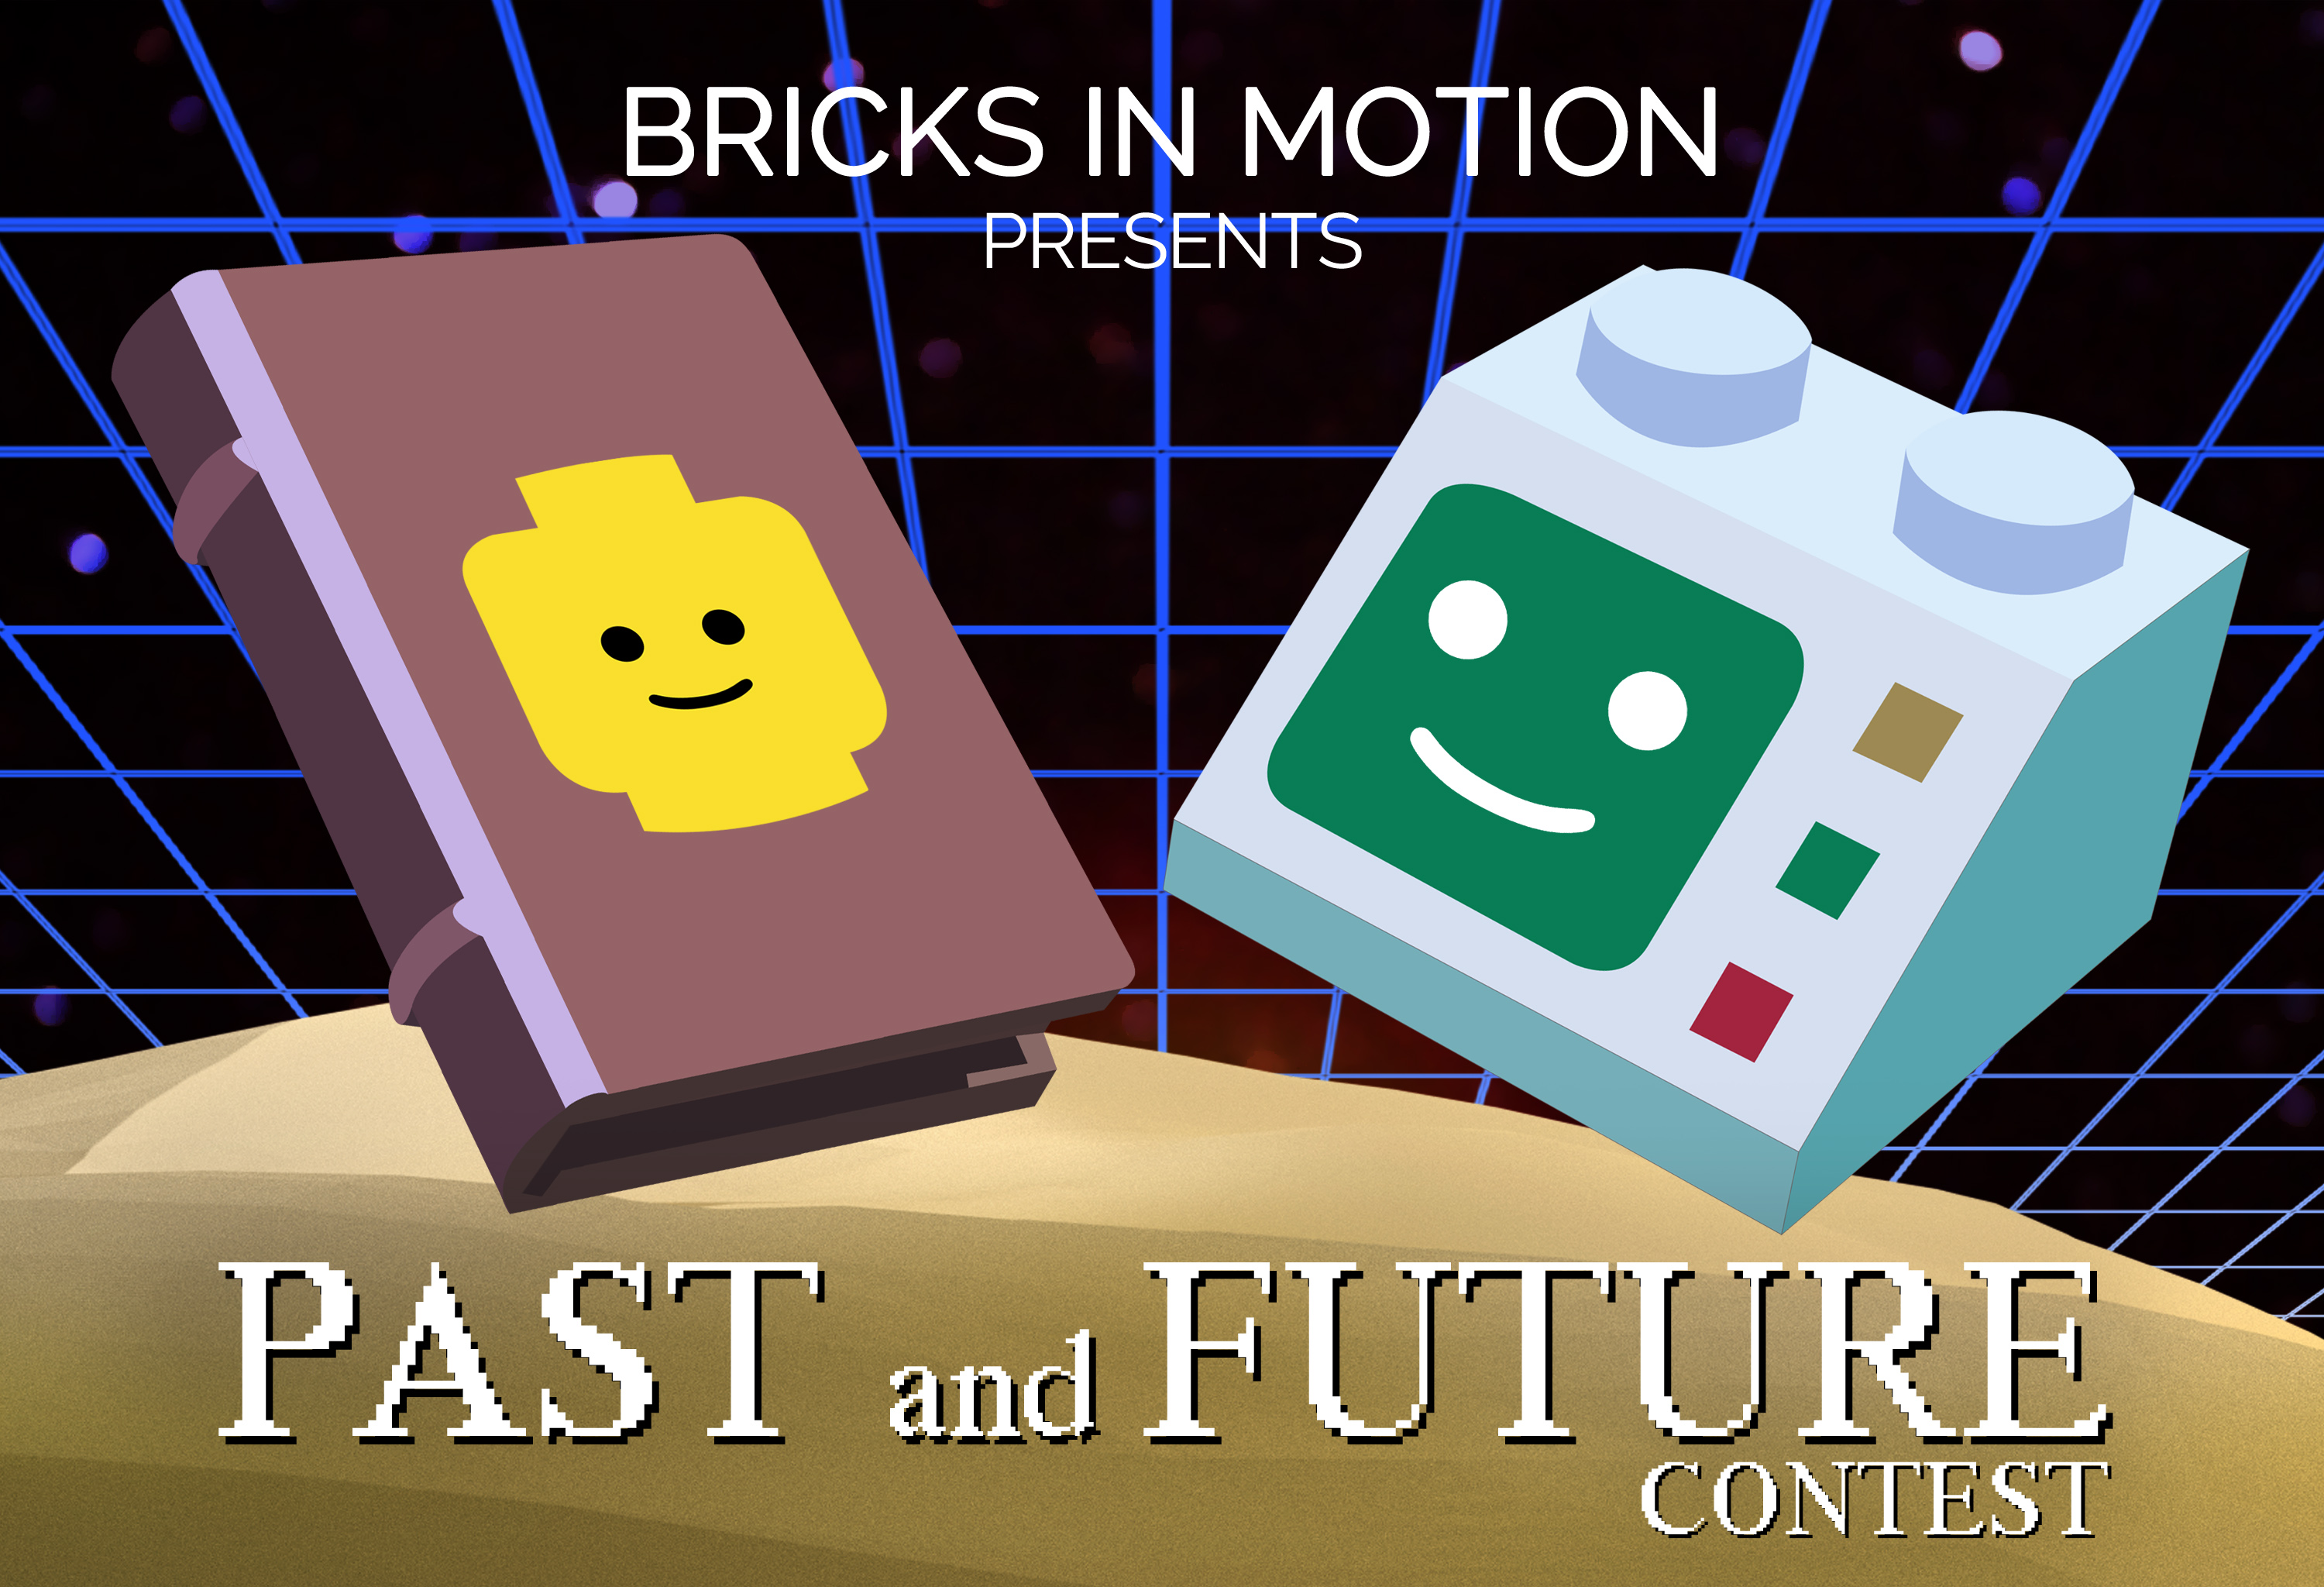 https://bricksinmotion.com/images/contests/pastandfuture/Past%20and%20Future%20Logo.jpg